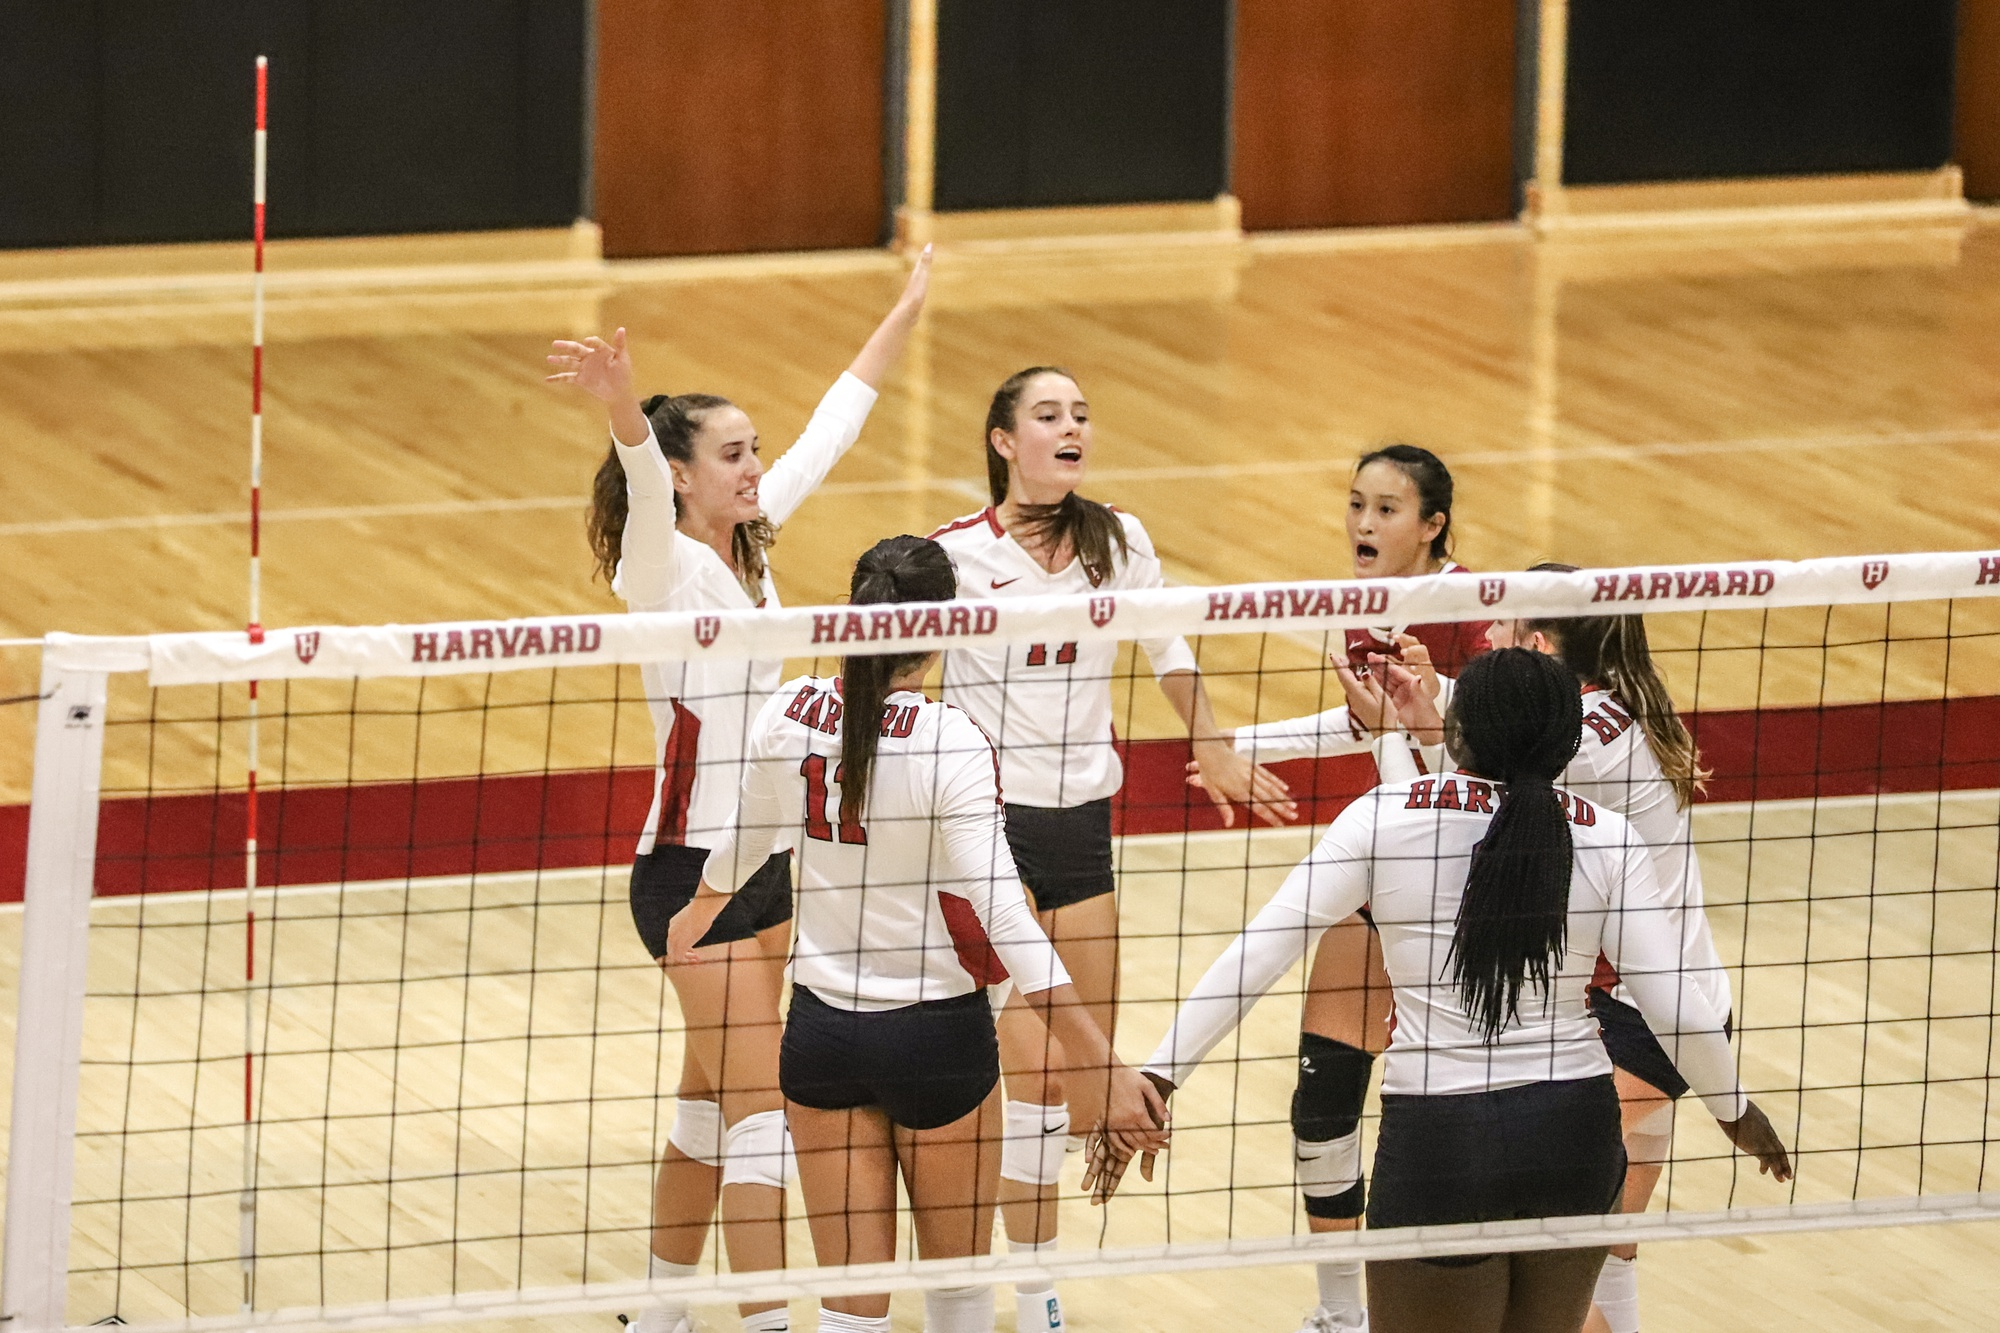 The Crimson upset Yale on Saturday after previously falling to the Bulldogs in straight sets.